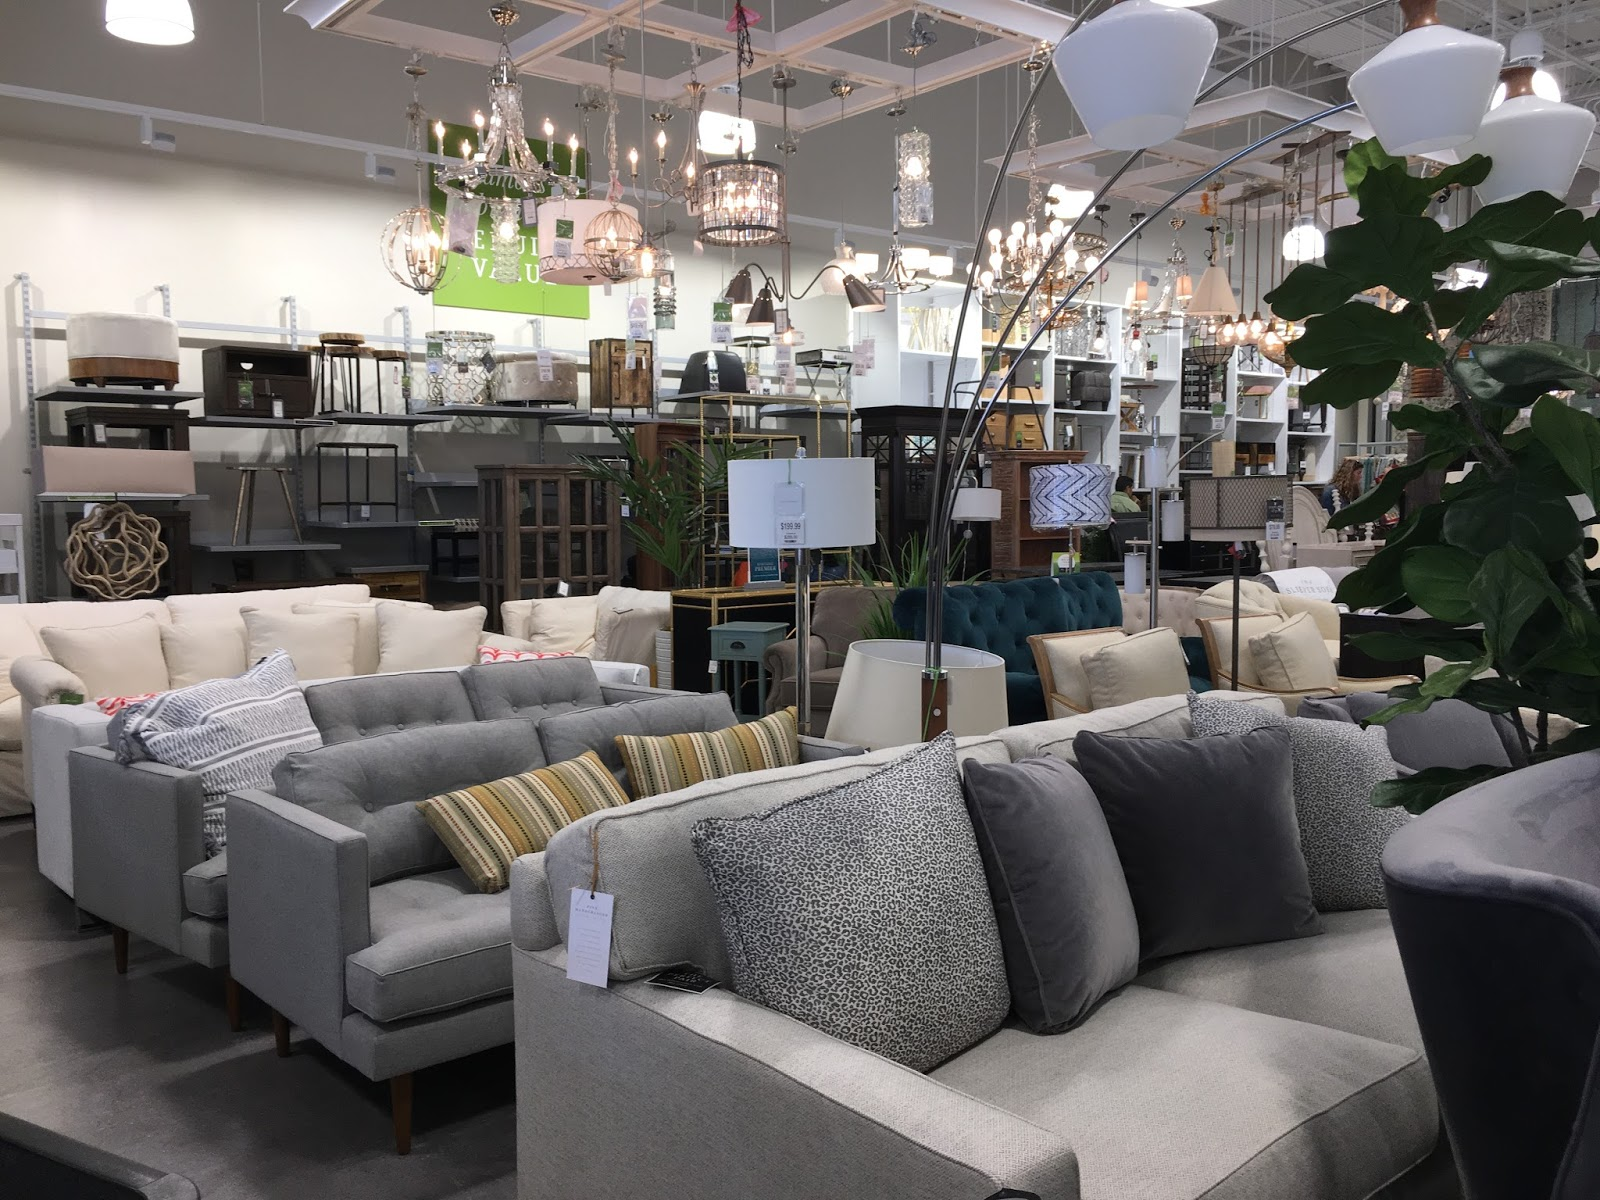 A peek inside a new homesense store calypso in the country New home furniture bekasi